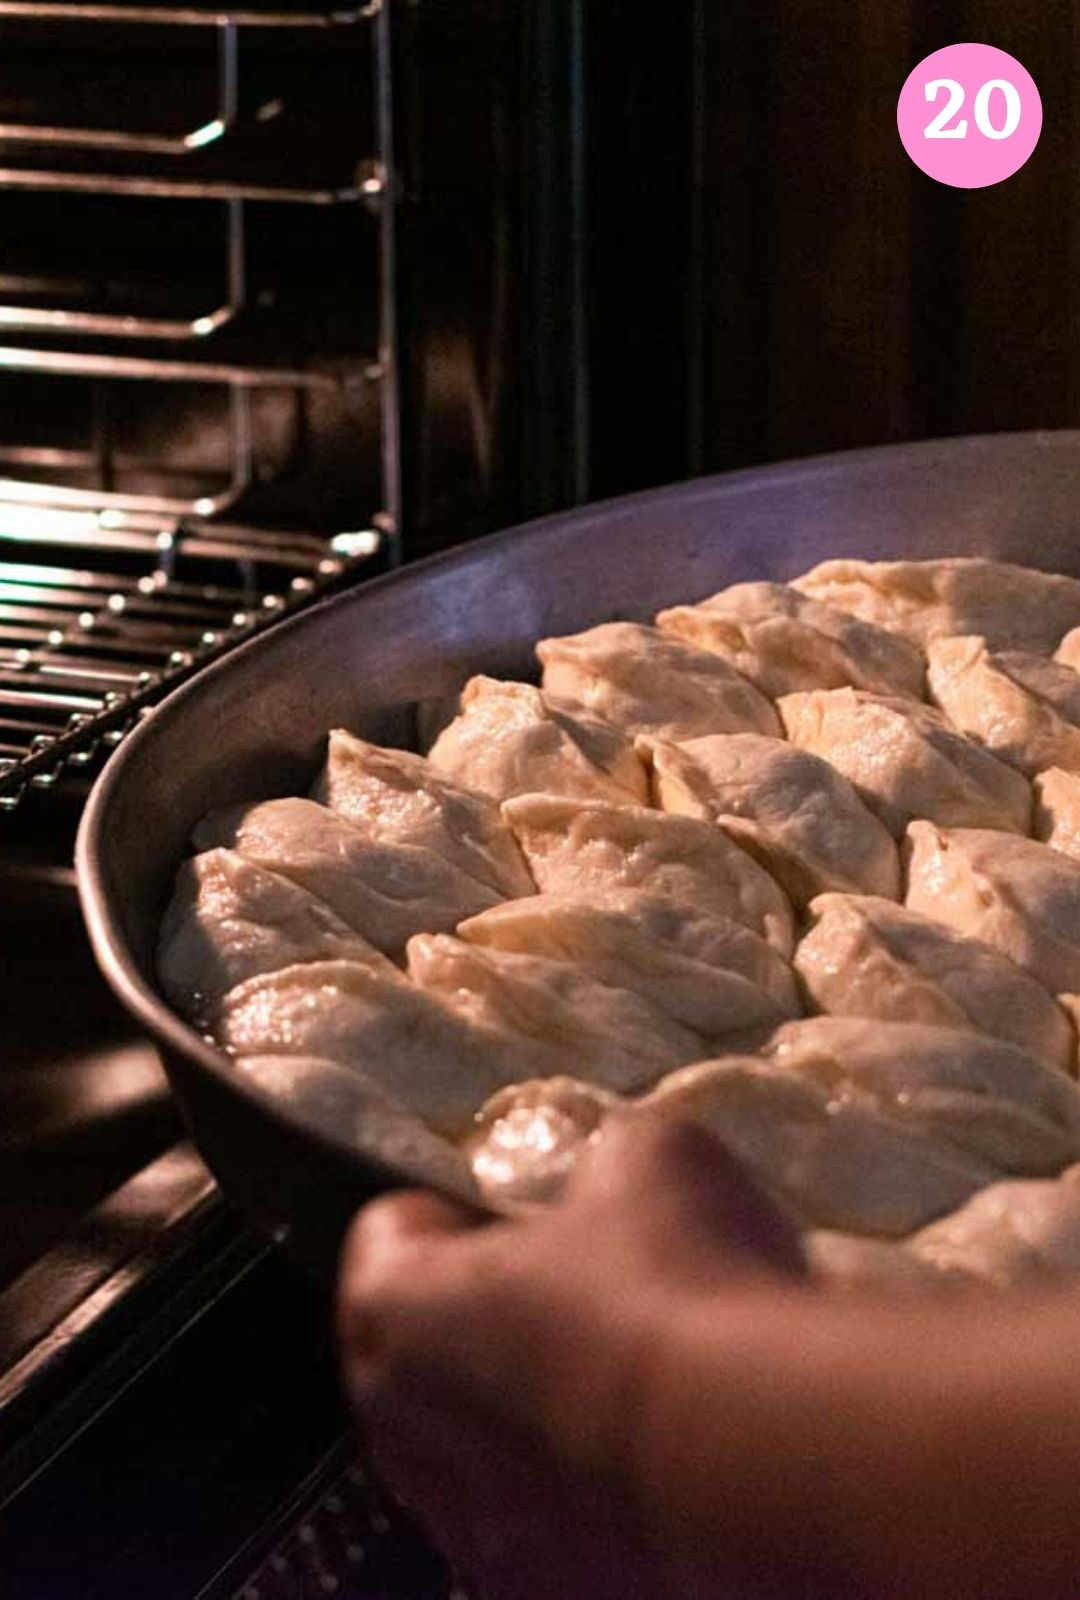 Placing hand pies in oven to bake